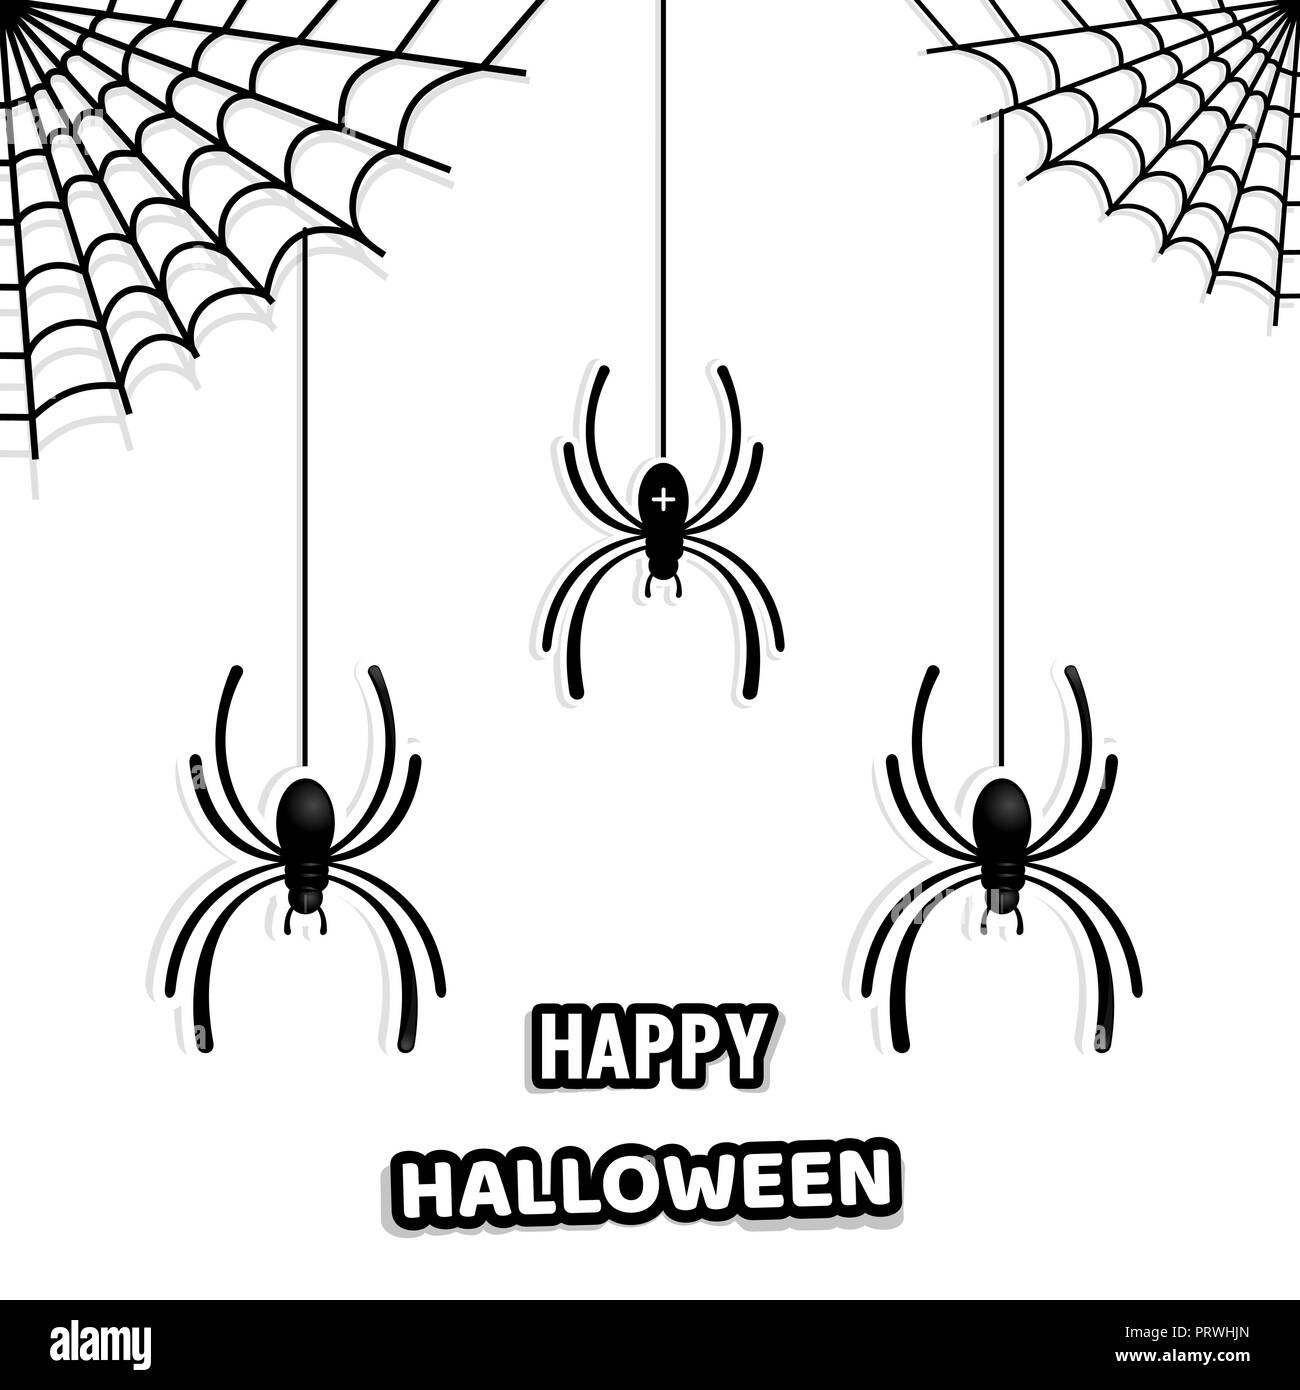 Set of stylish paper spiders for decorating a house on Halloween. Halloween design. Spider web and spiders. Vector illustration isolated on white back - Stock Vector